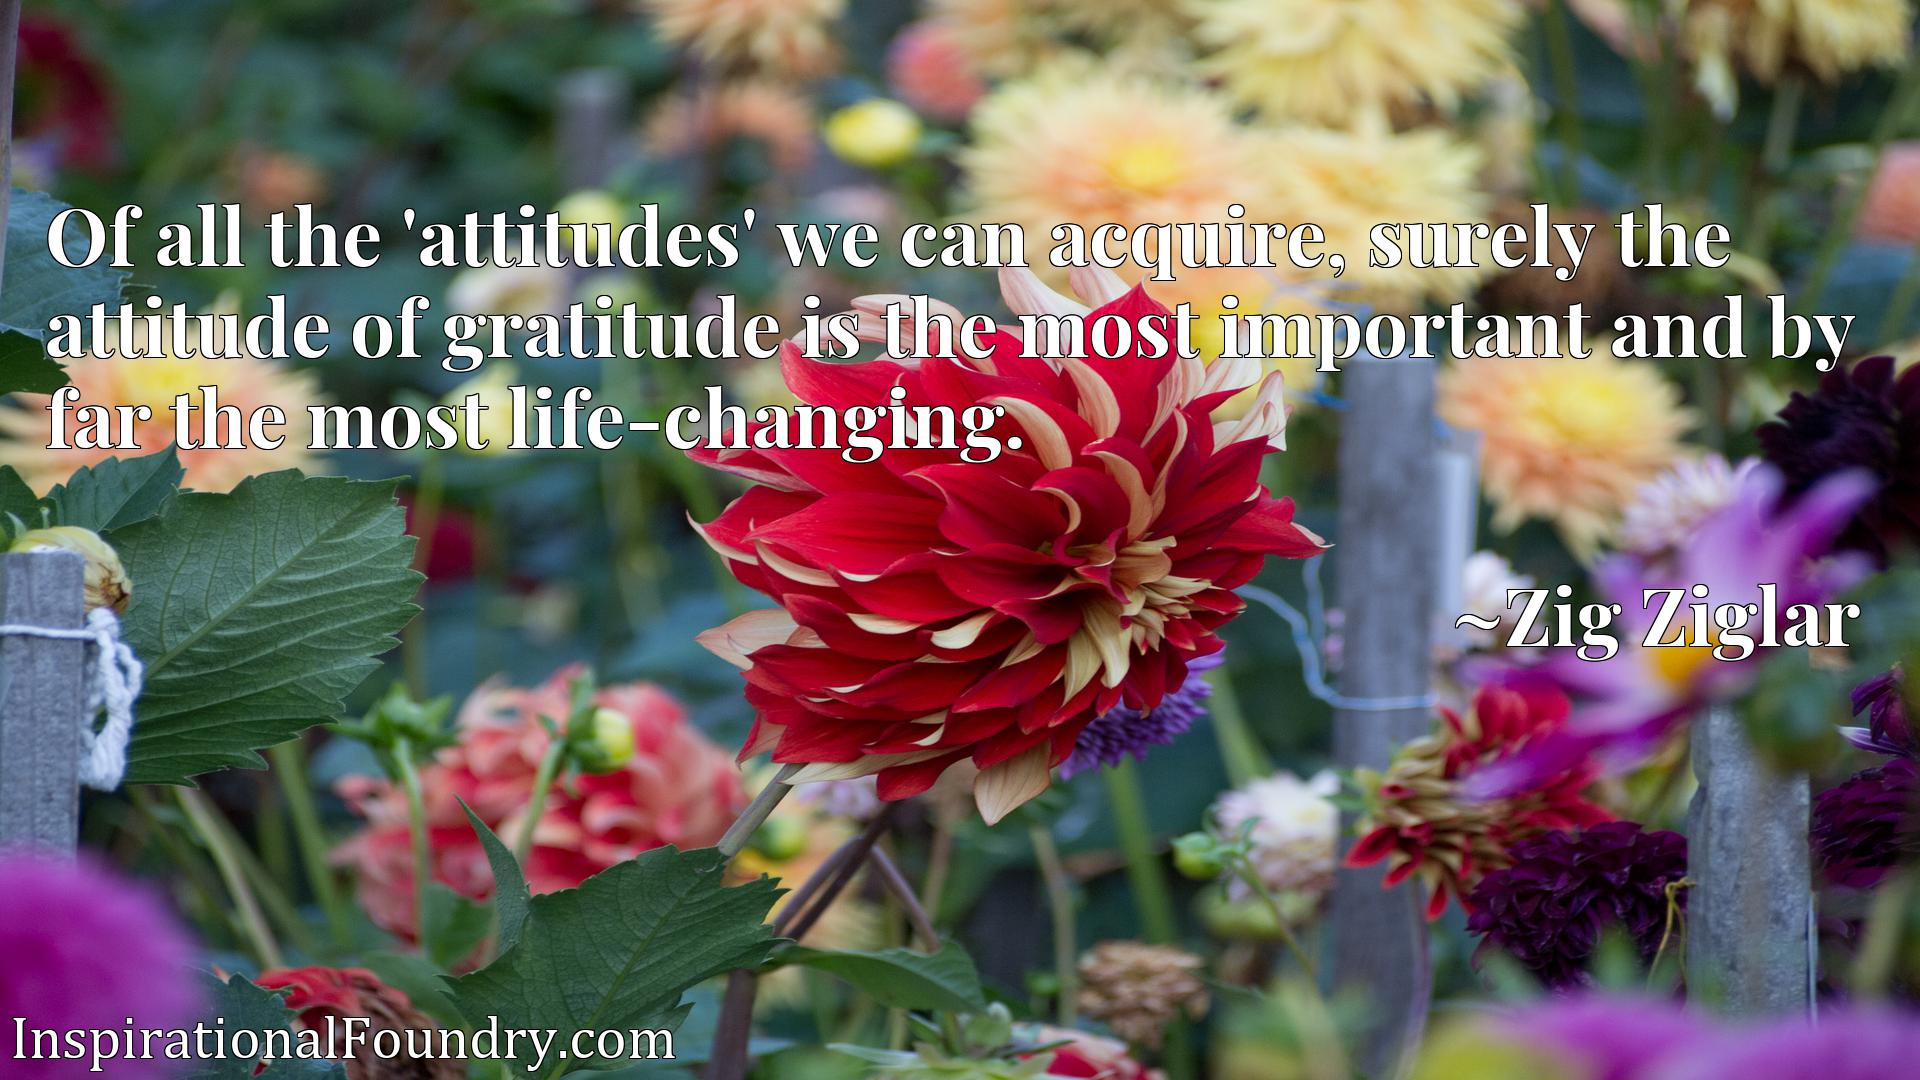 Of all the 'attitudes' we can acquire, surely the attitude of gratitude is the most important and by far the most life-changing.